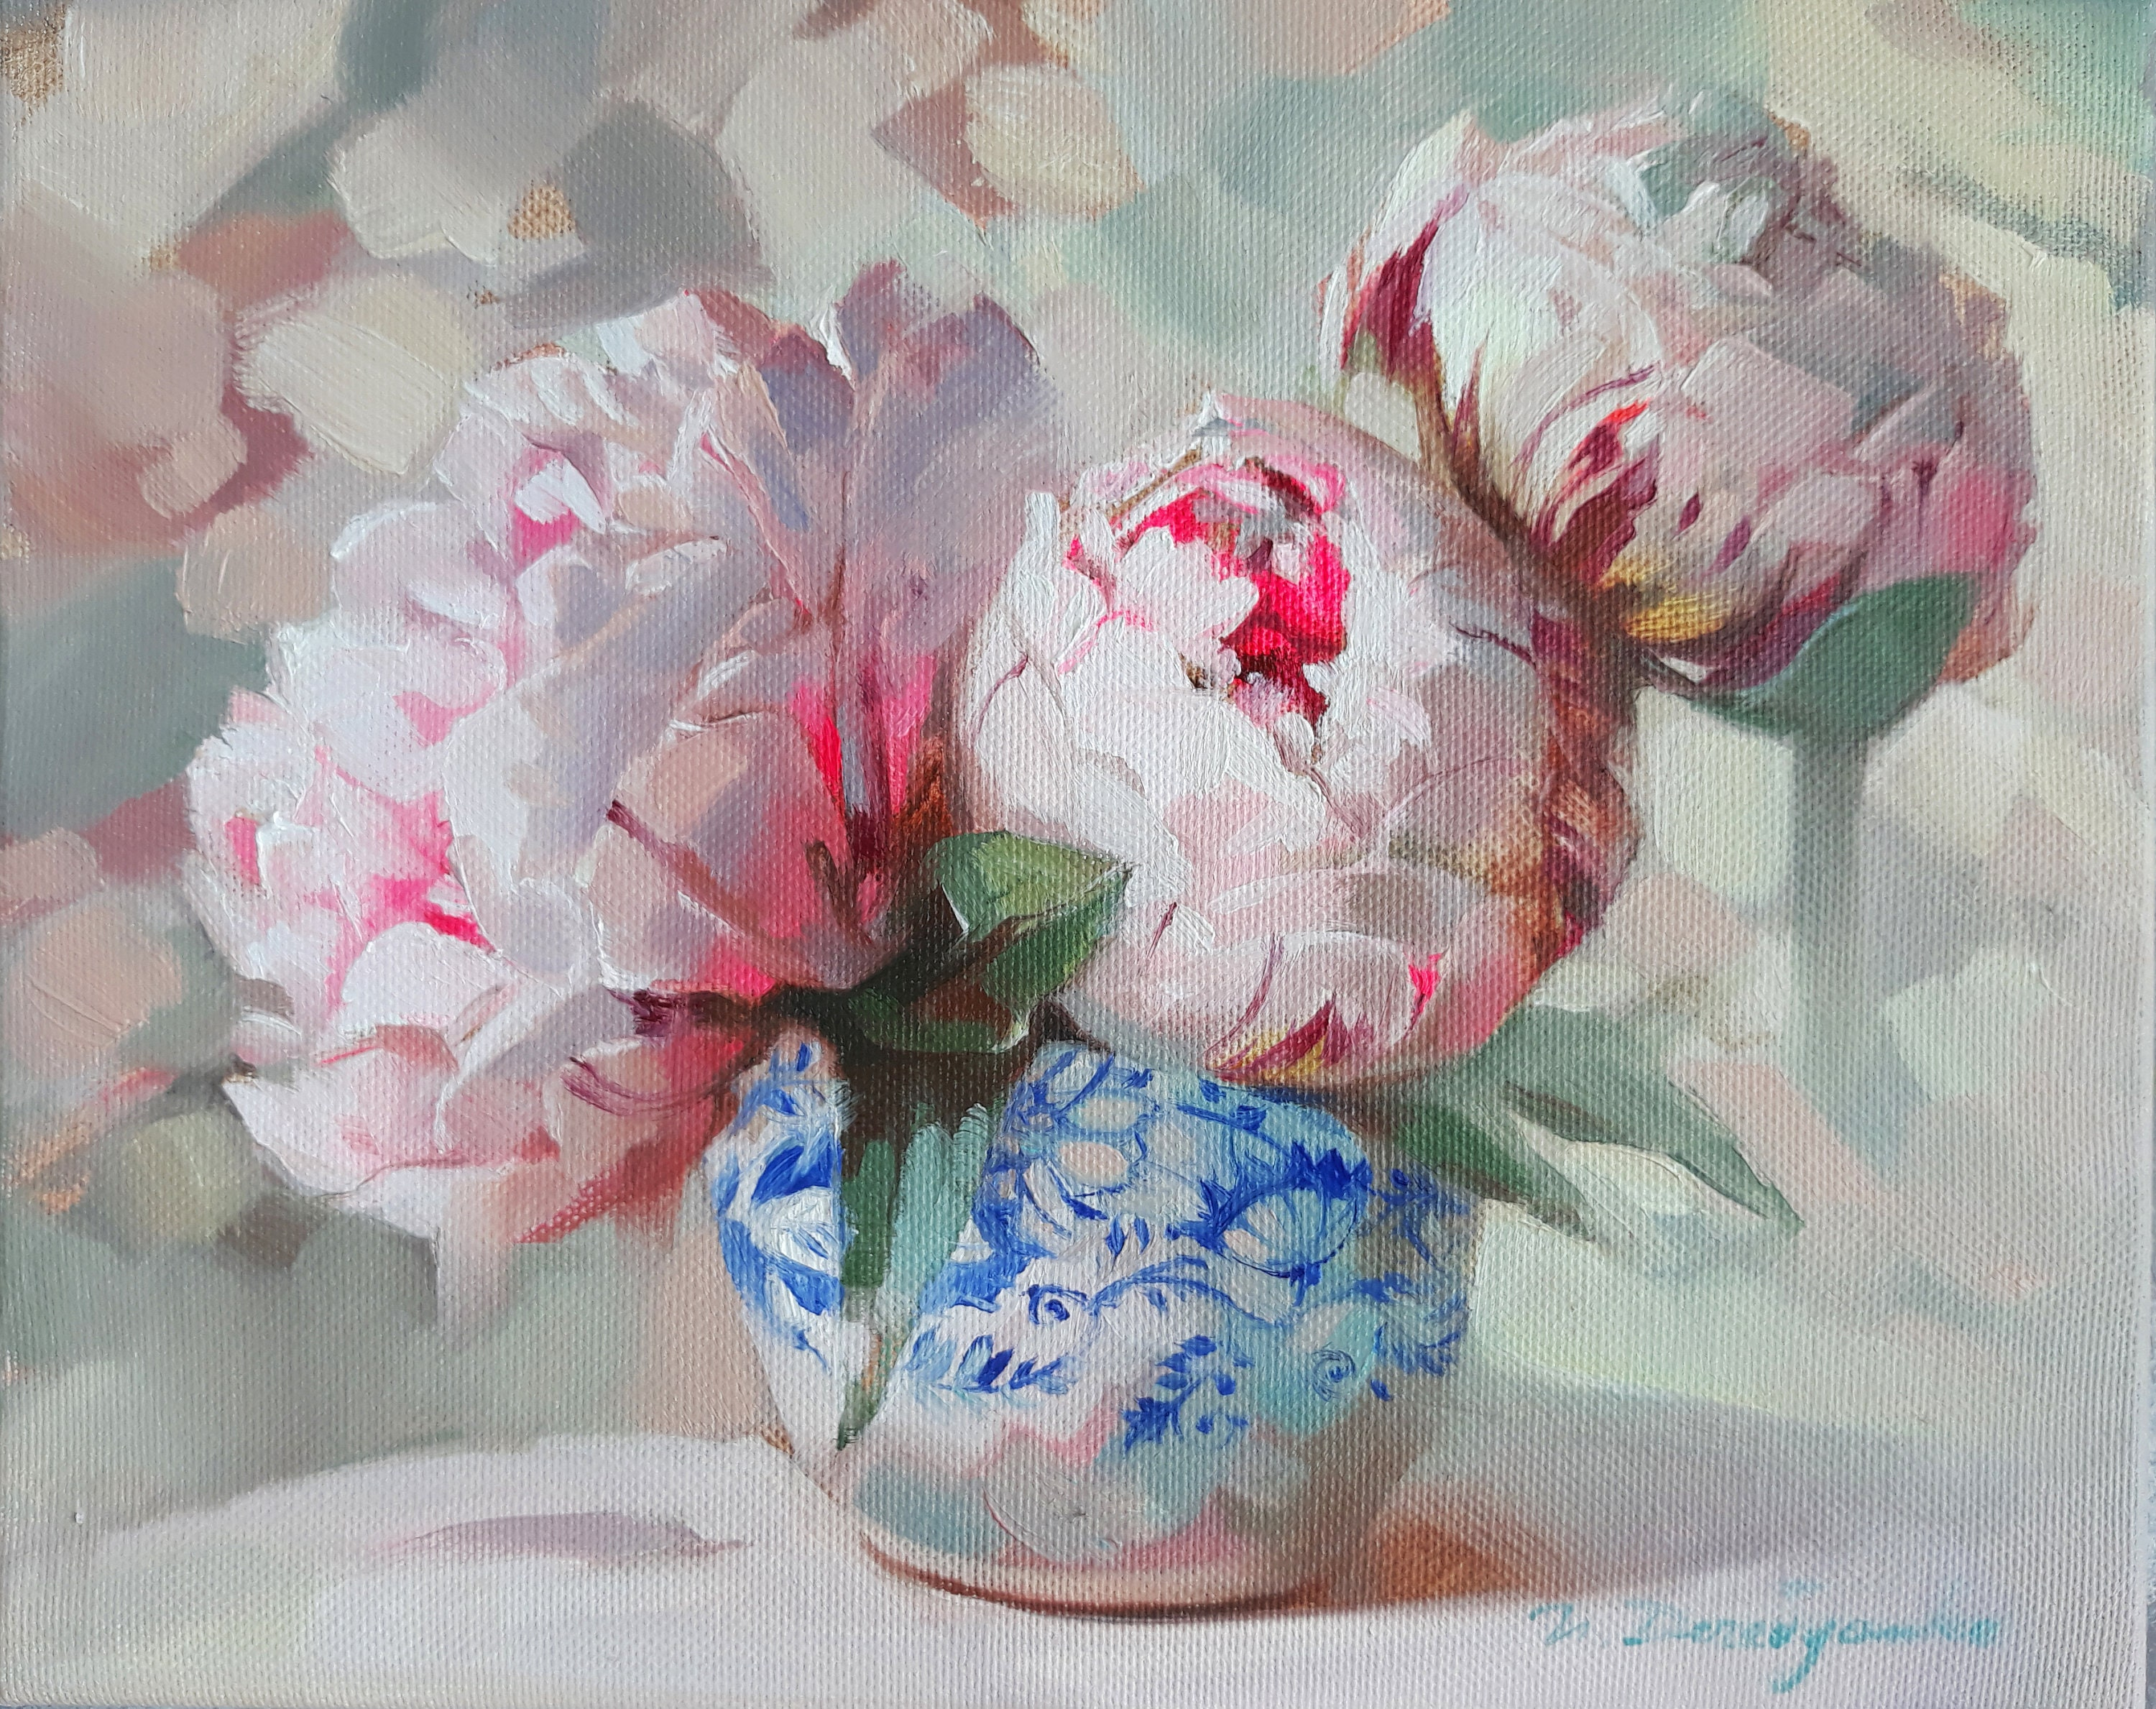 Pink Peony Original  small OIL painting 6 x 6 inches  stretched canvas 04-202 collectible  ready to ship